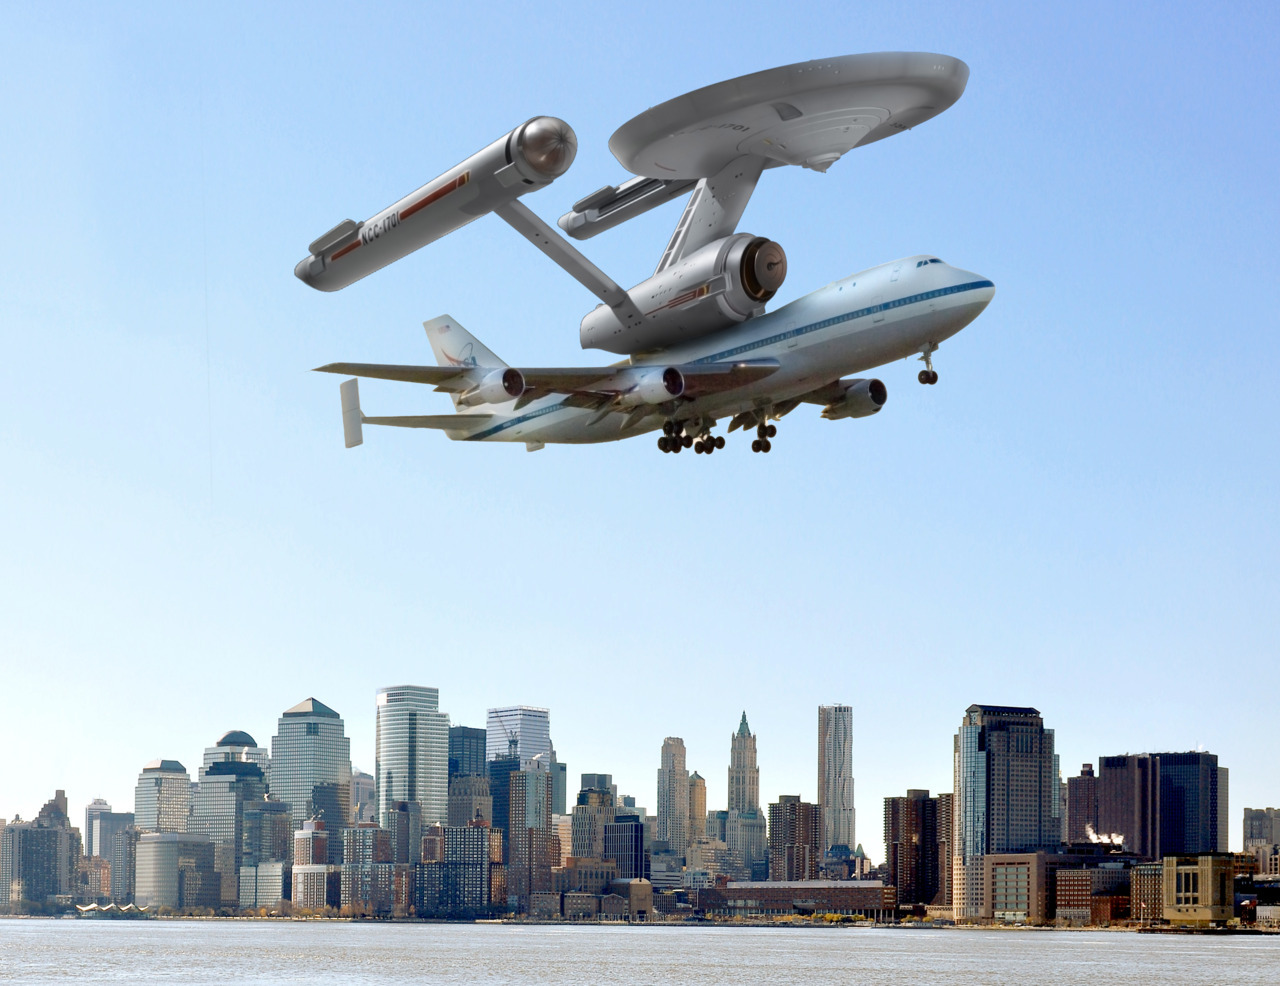 So long, Enterprise. Make it so. *Salute.  ex-genius:NEWS: Space Shuttle Enterprise completes historic flyover of New York City on the back of a modified 747 before delivery to the intrepid museum. This is totally an actual photograph of what actually happened.